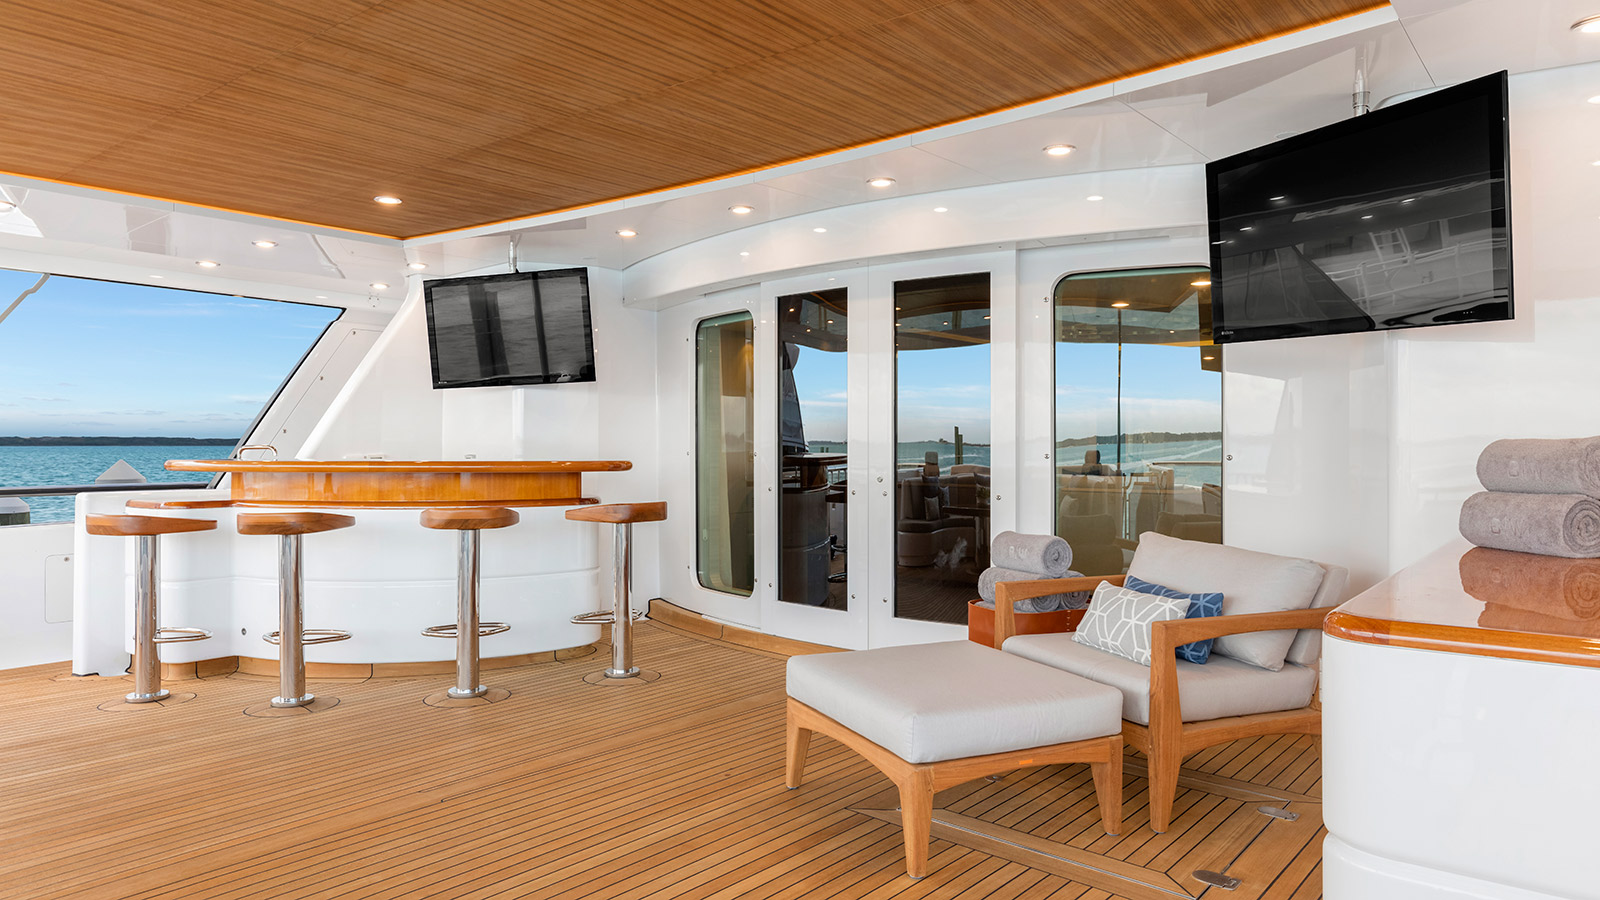 the-cockpit-of-the-feadship-superyacht-broadwater-after-her-lauderdale-marine-center-refit-credit-uneek